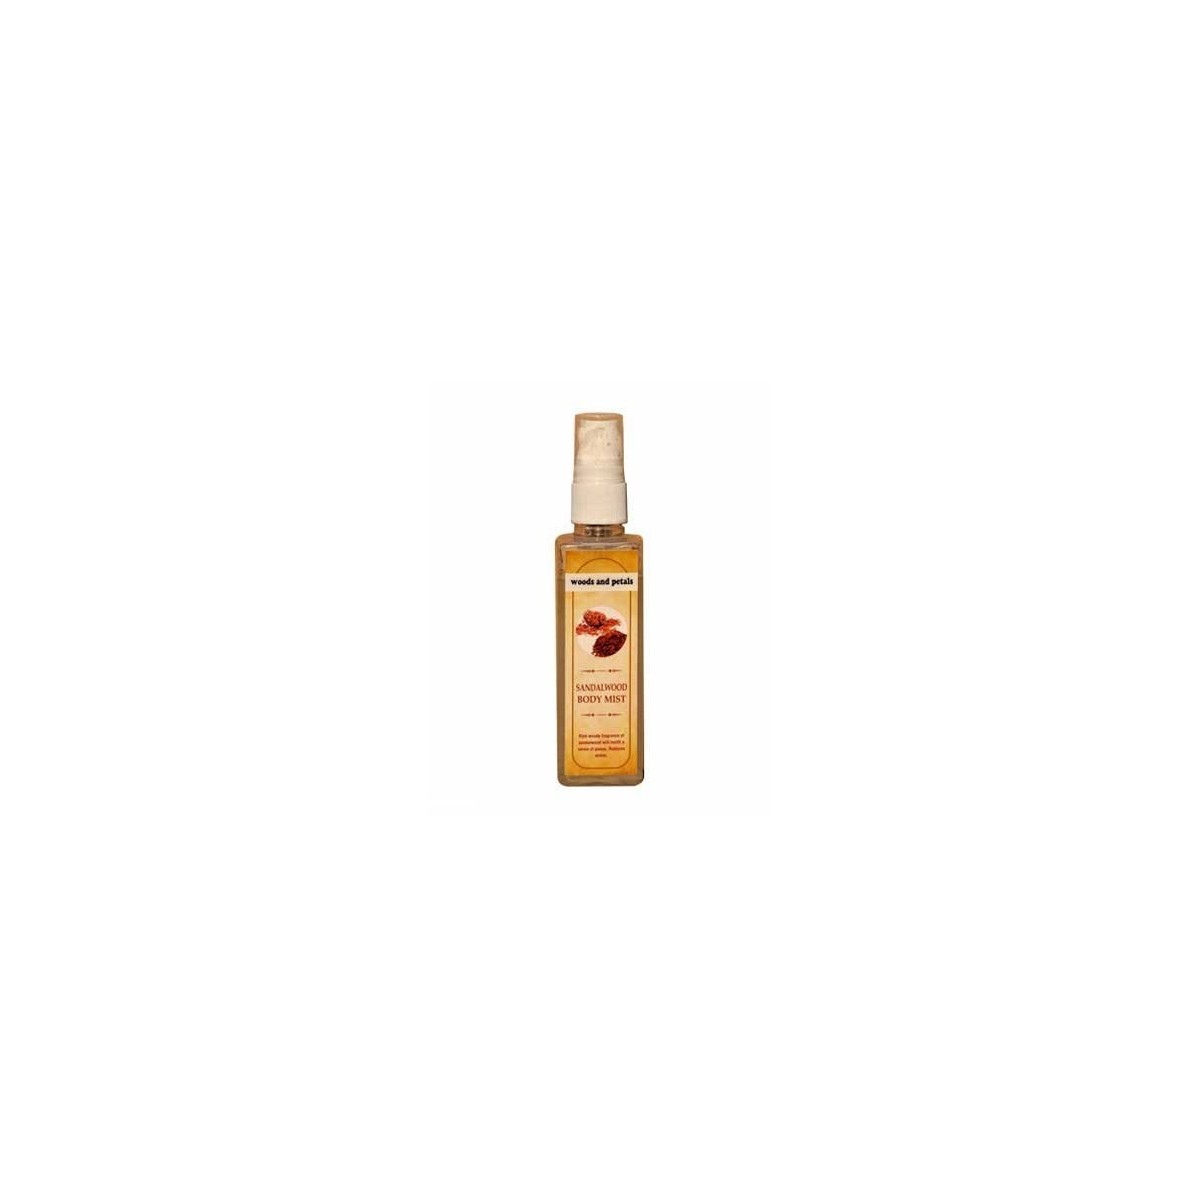 Woods And Petals- Sandalwood Body Mist- 100Ml